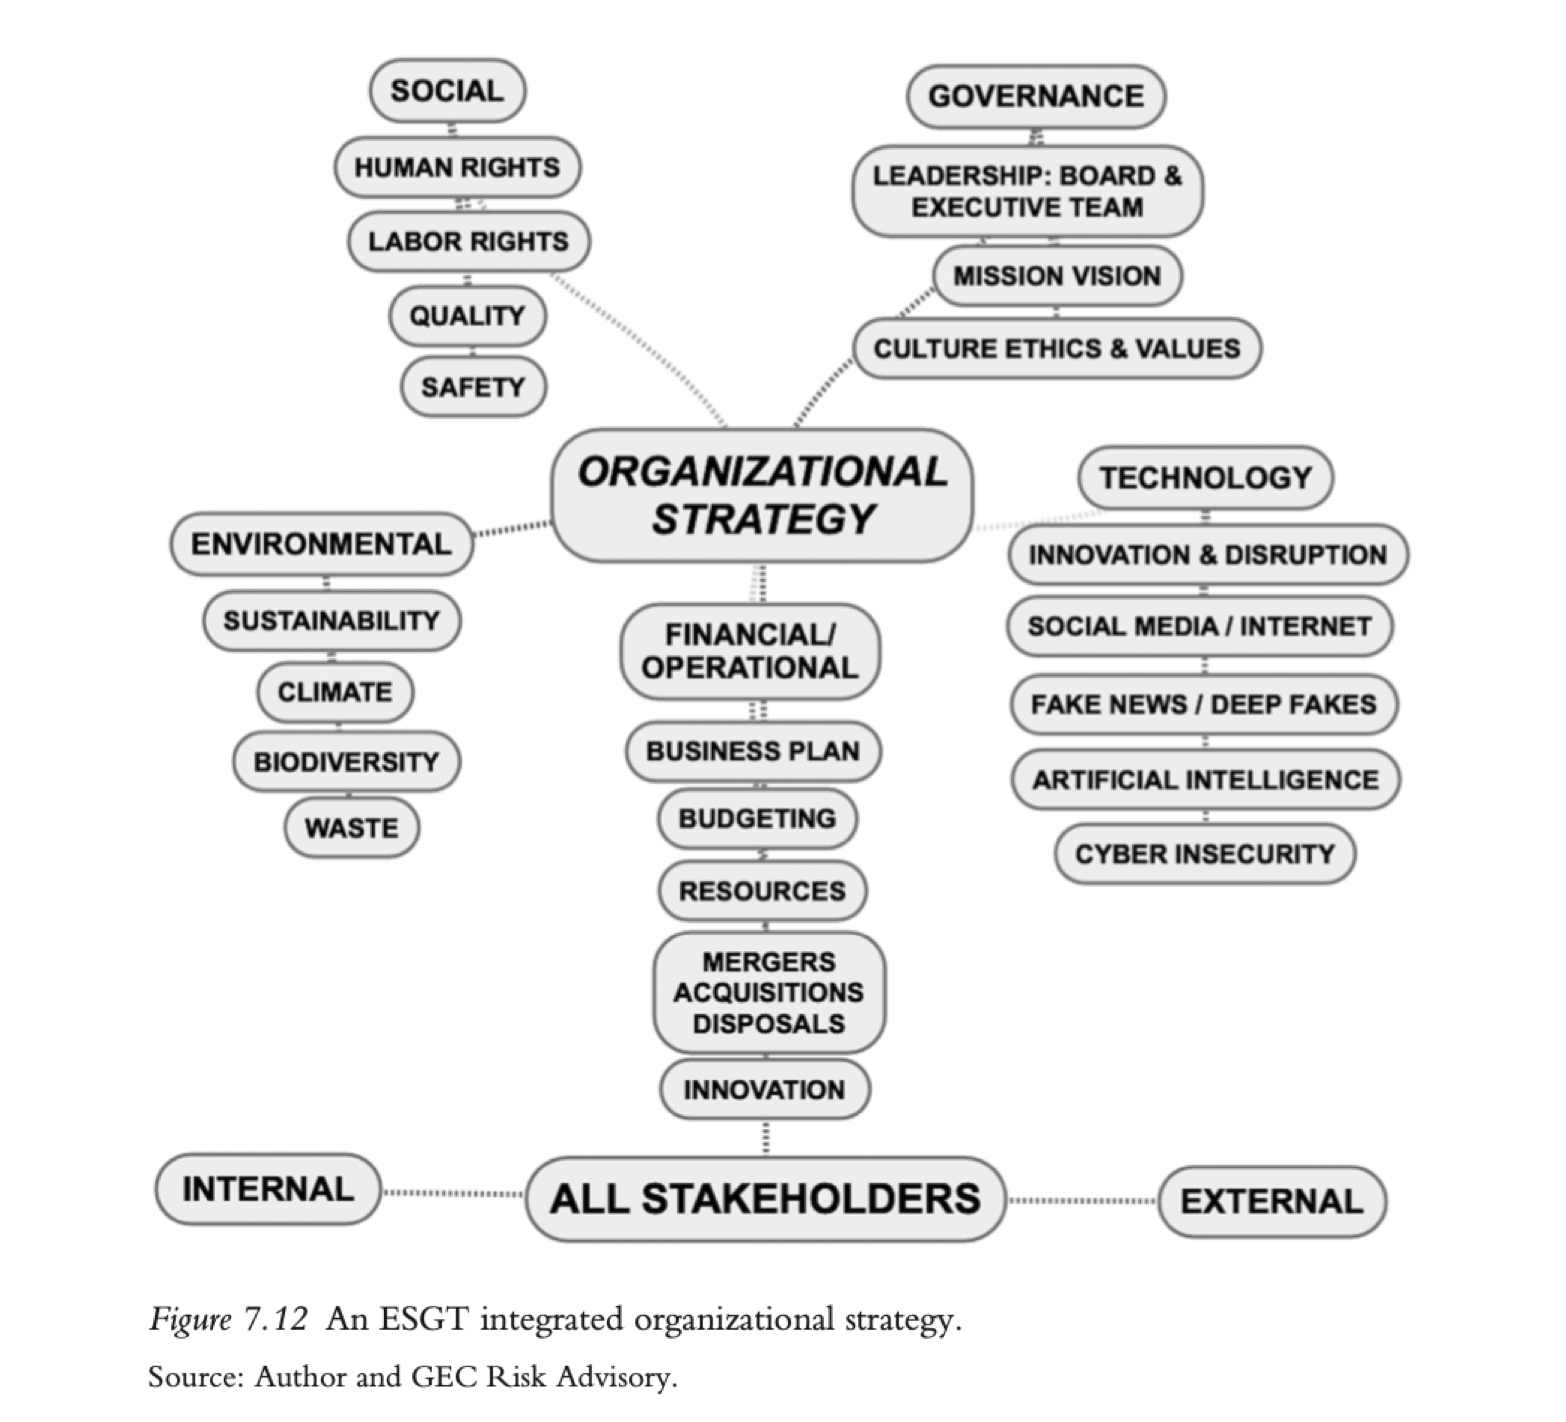 An integrated ESGT strategy for organizations